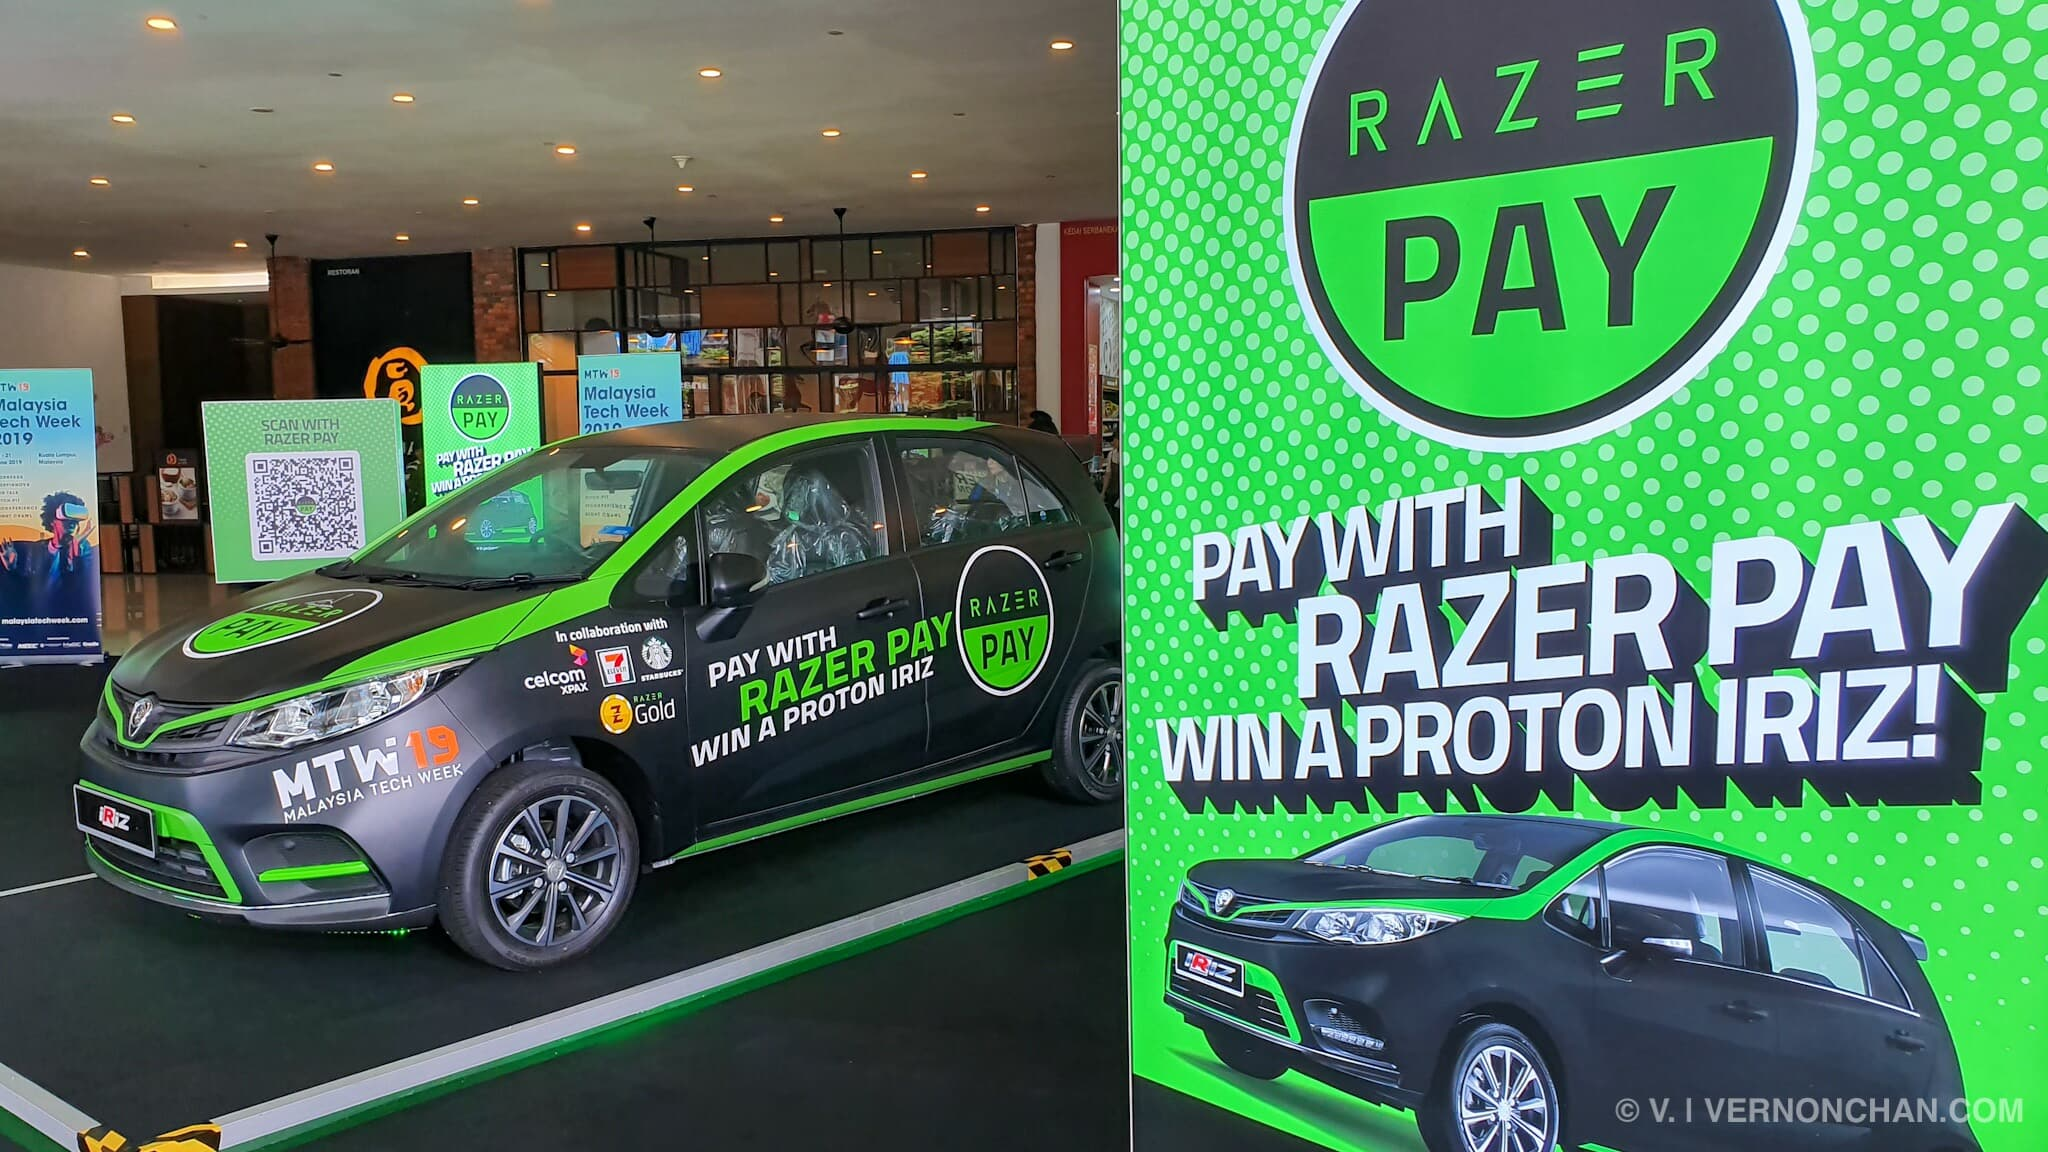 Here's how you can win the Razer Pay 2019 Proton Iriz